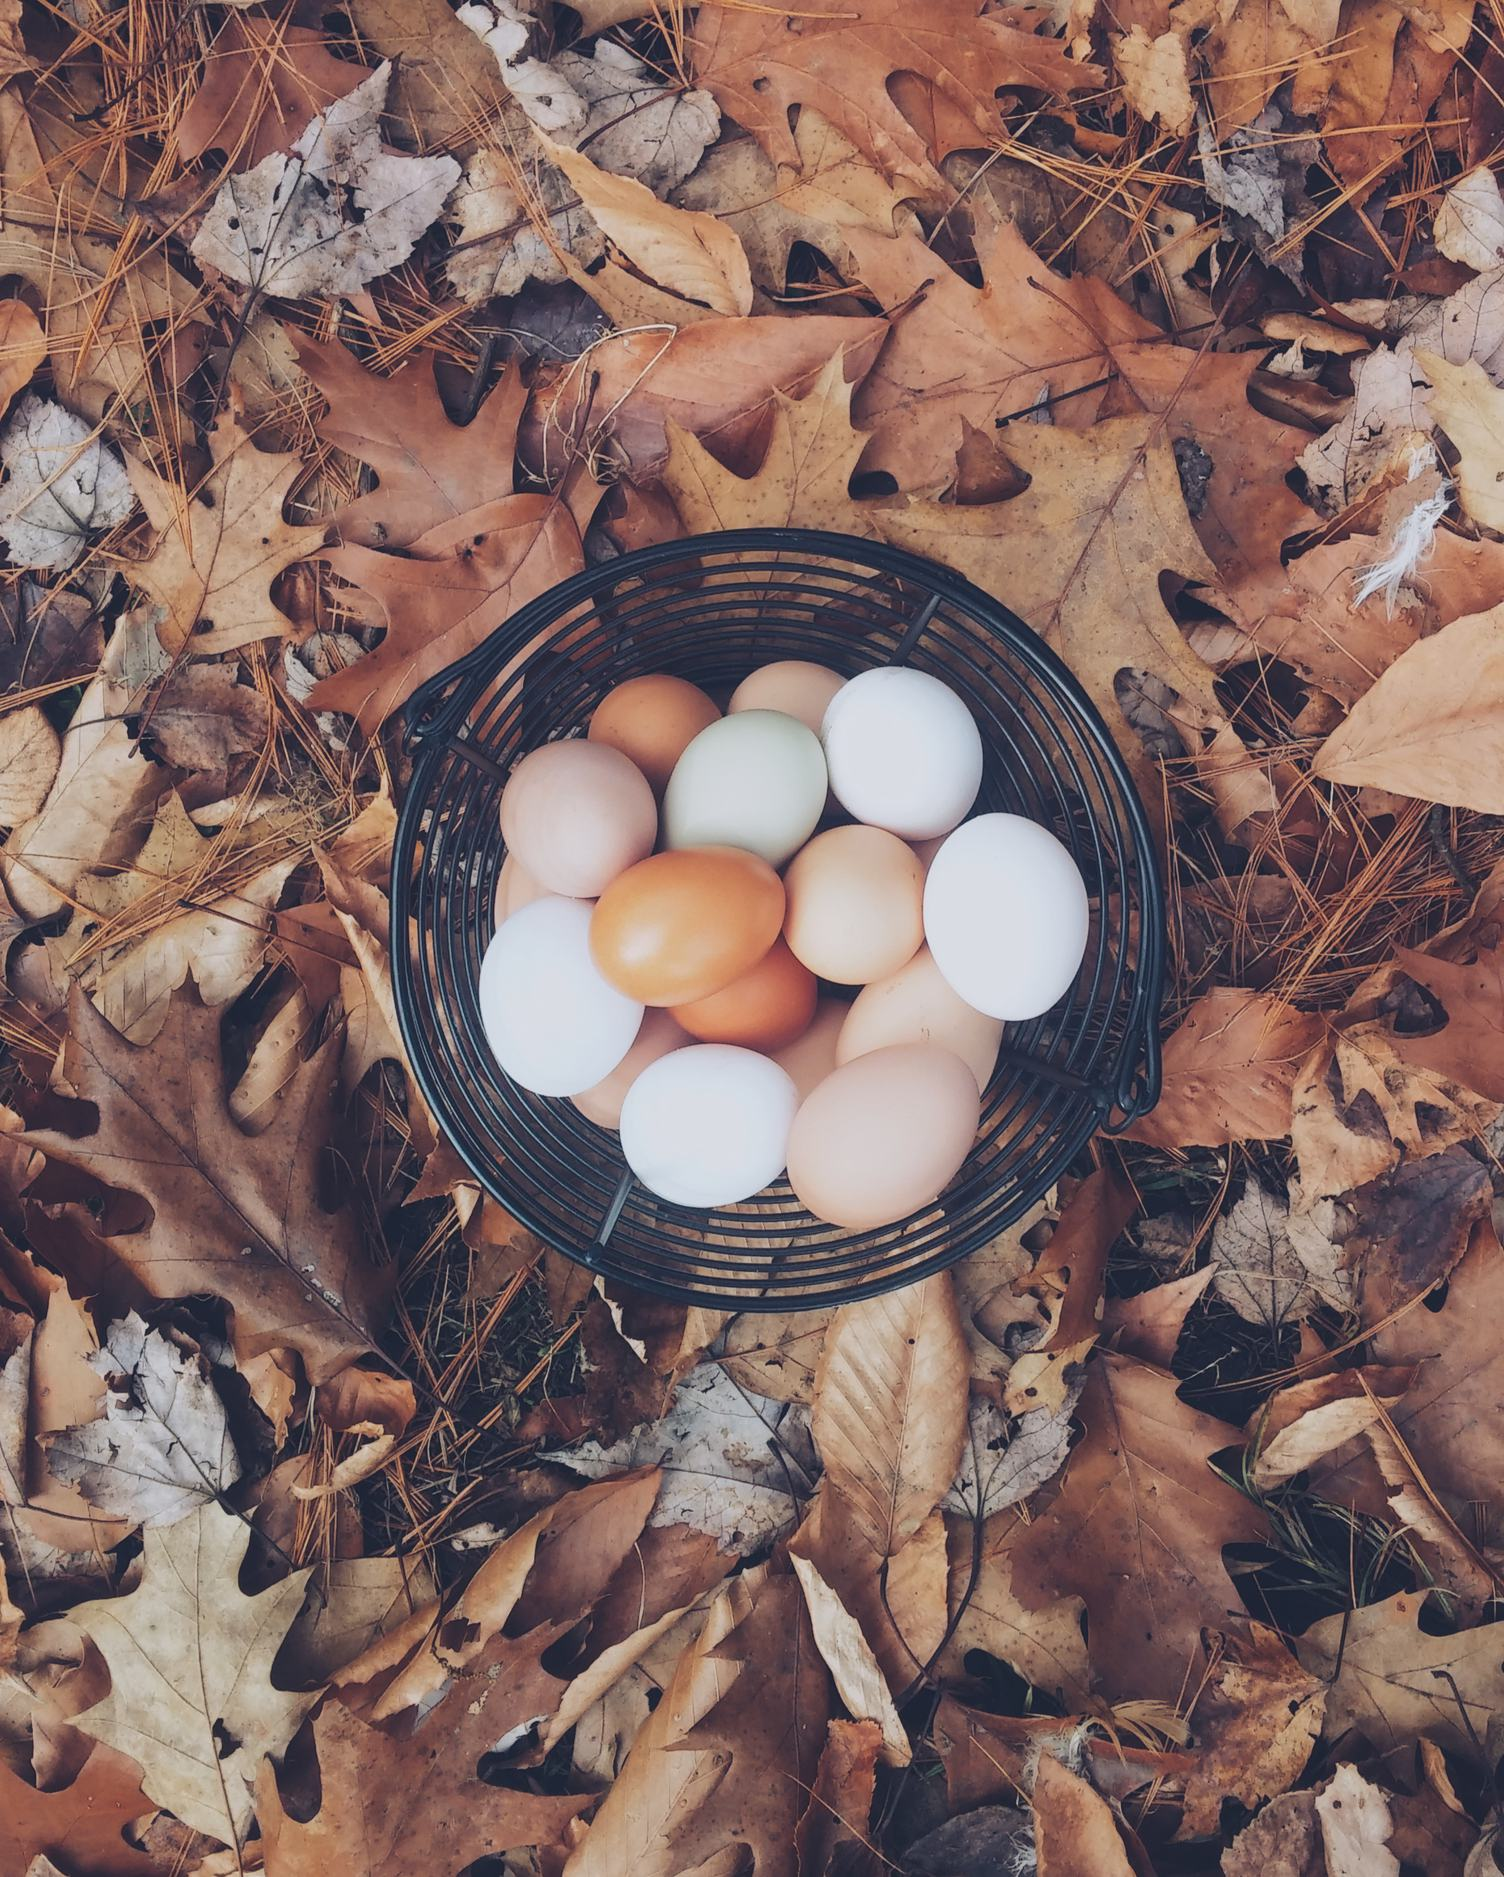 Autumn Composition of Eggs in a Basket on Acorn Leaves